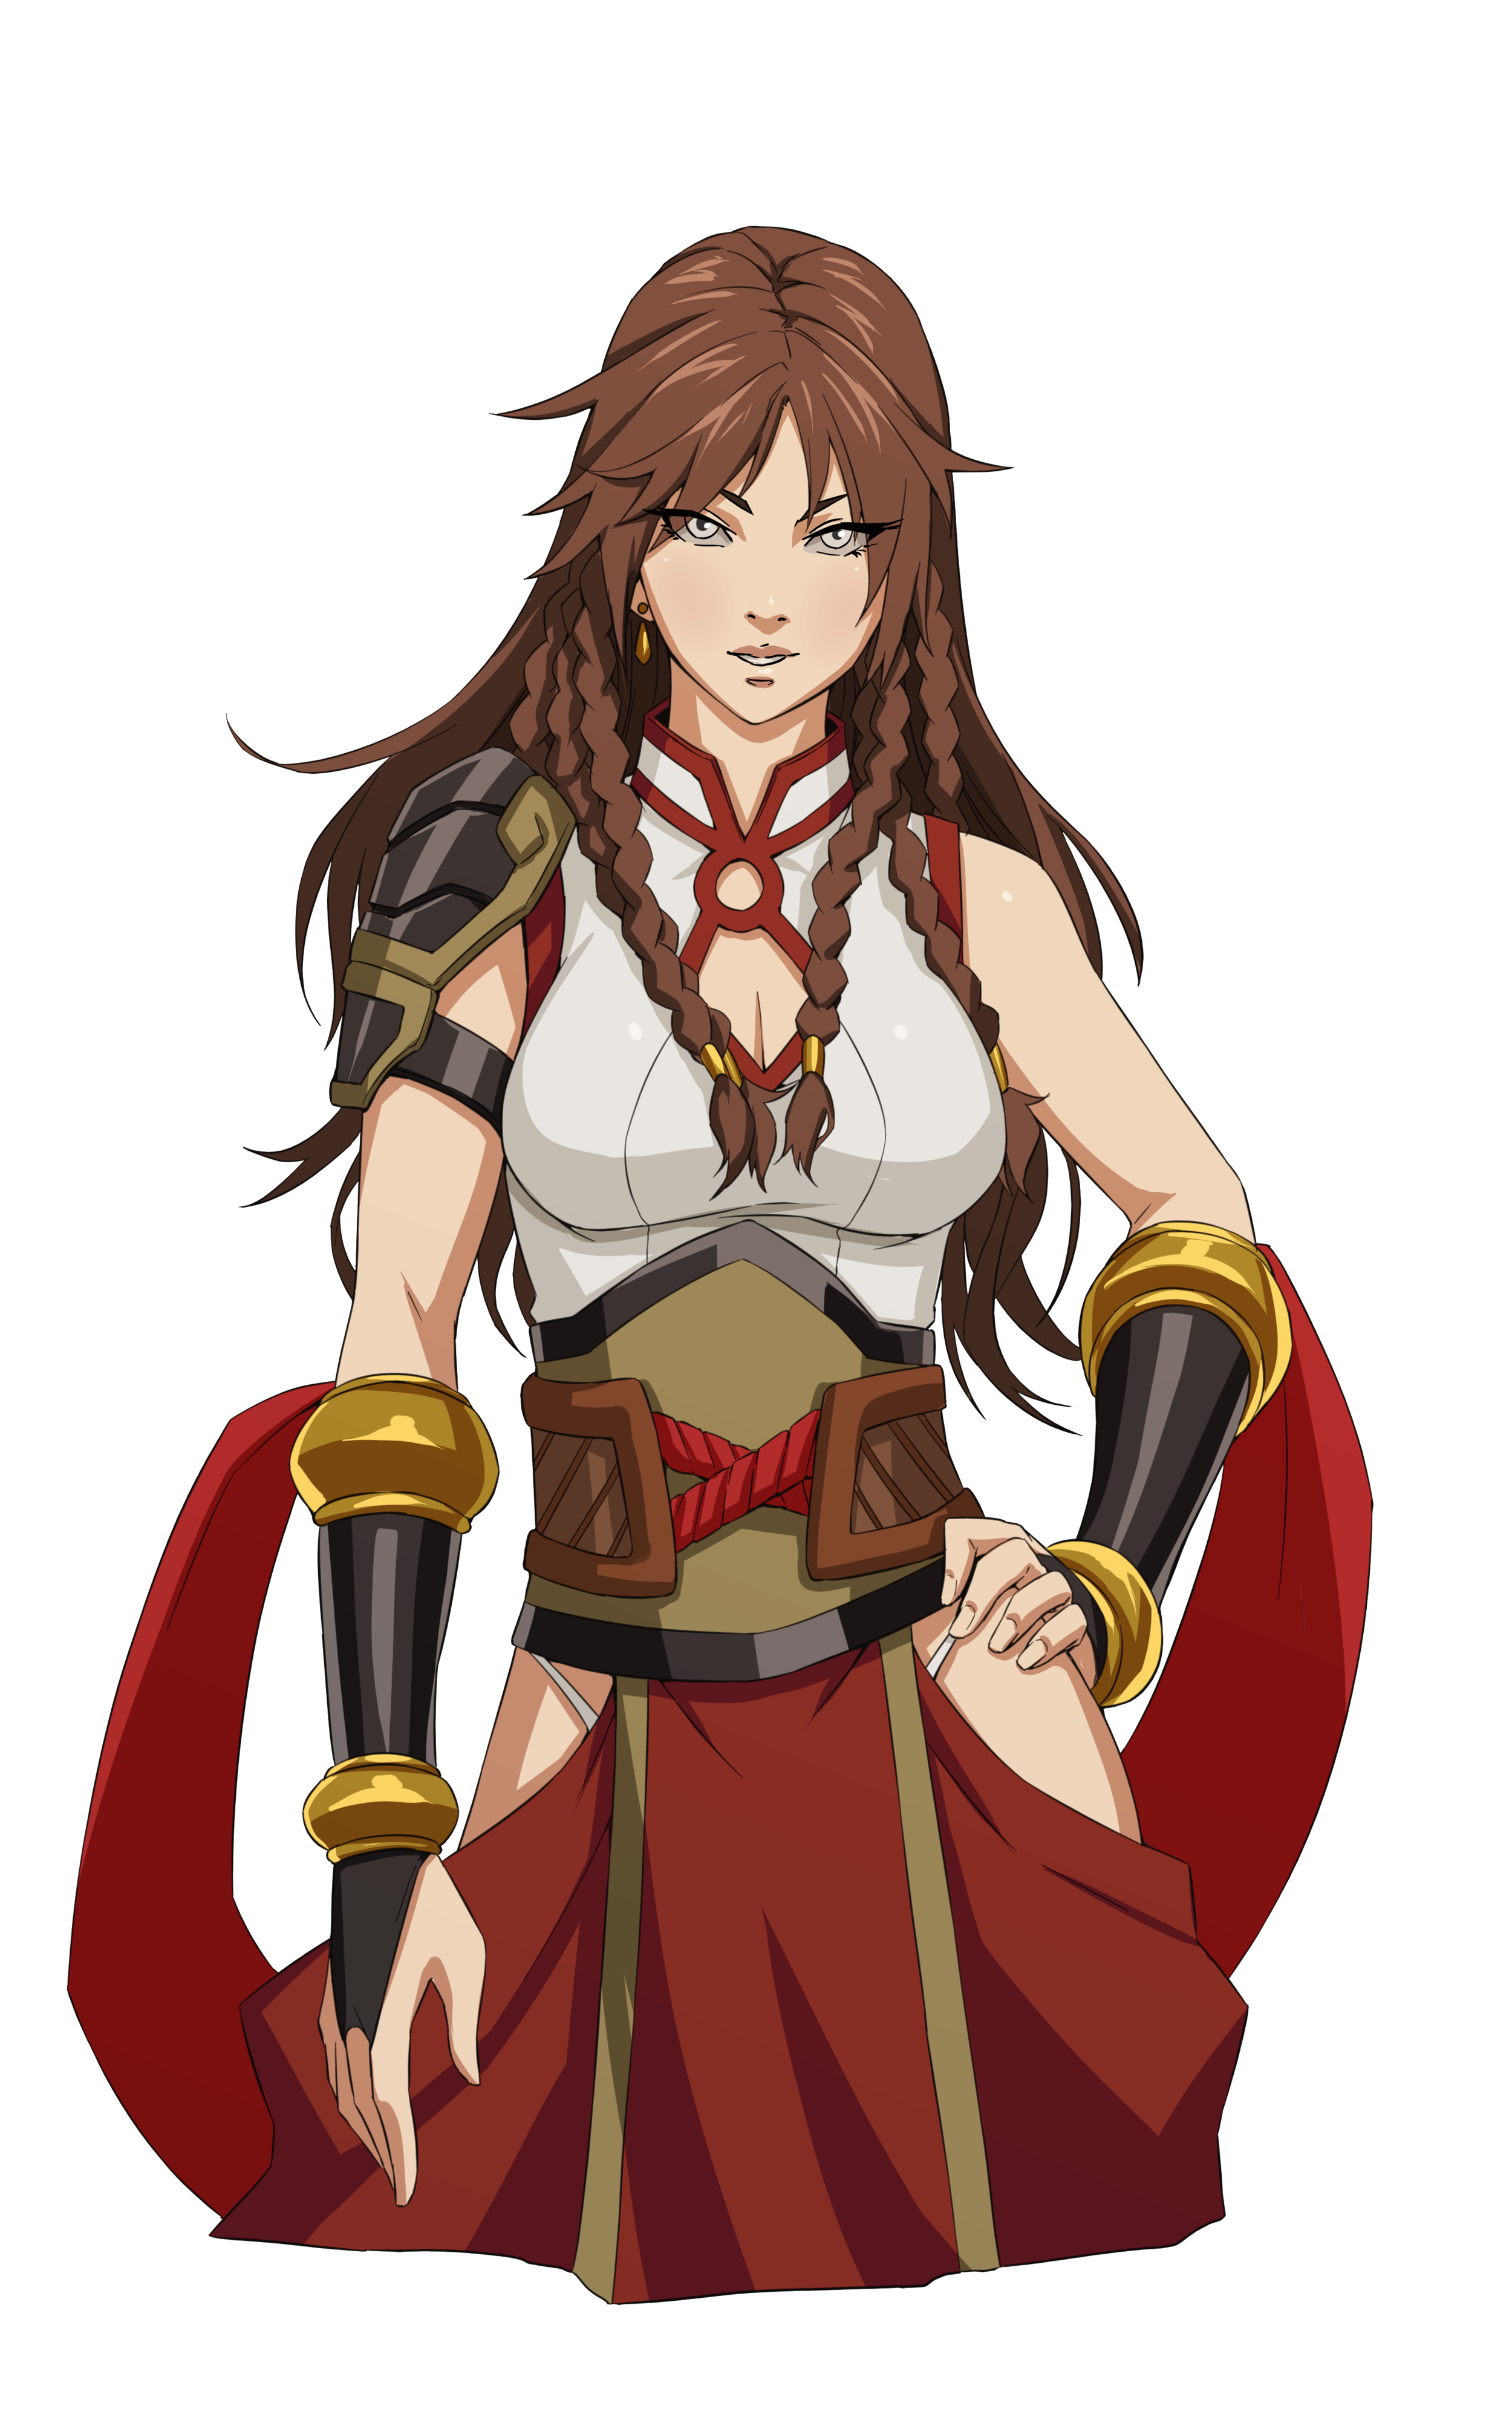 The Protagonist, heir to both the Imperial Throne and her family's martial arts style. A girl eager to prove herself as both a future leader and fighter to her mother, the Empress.